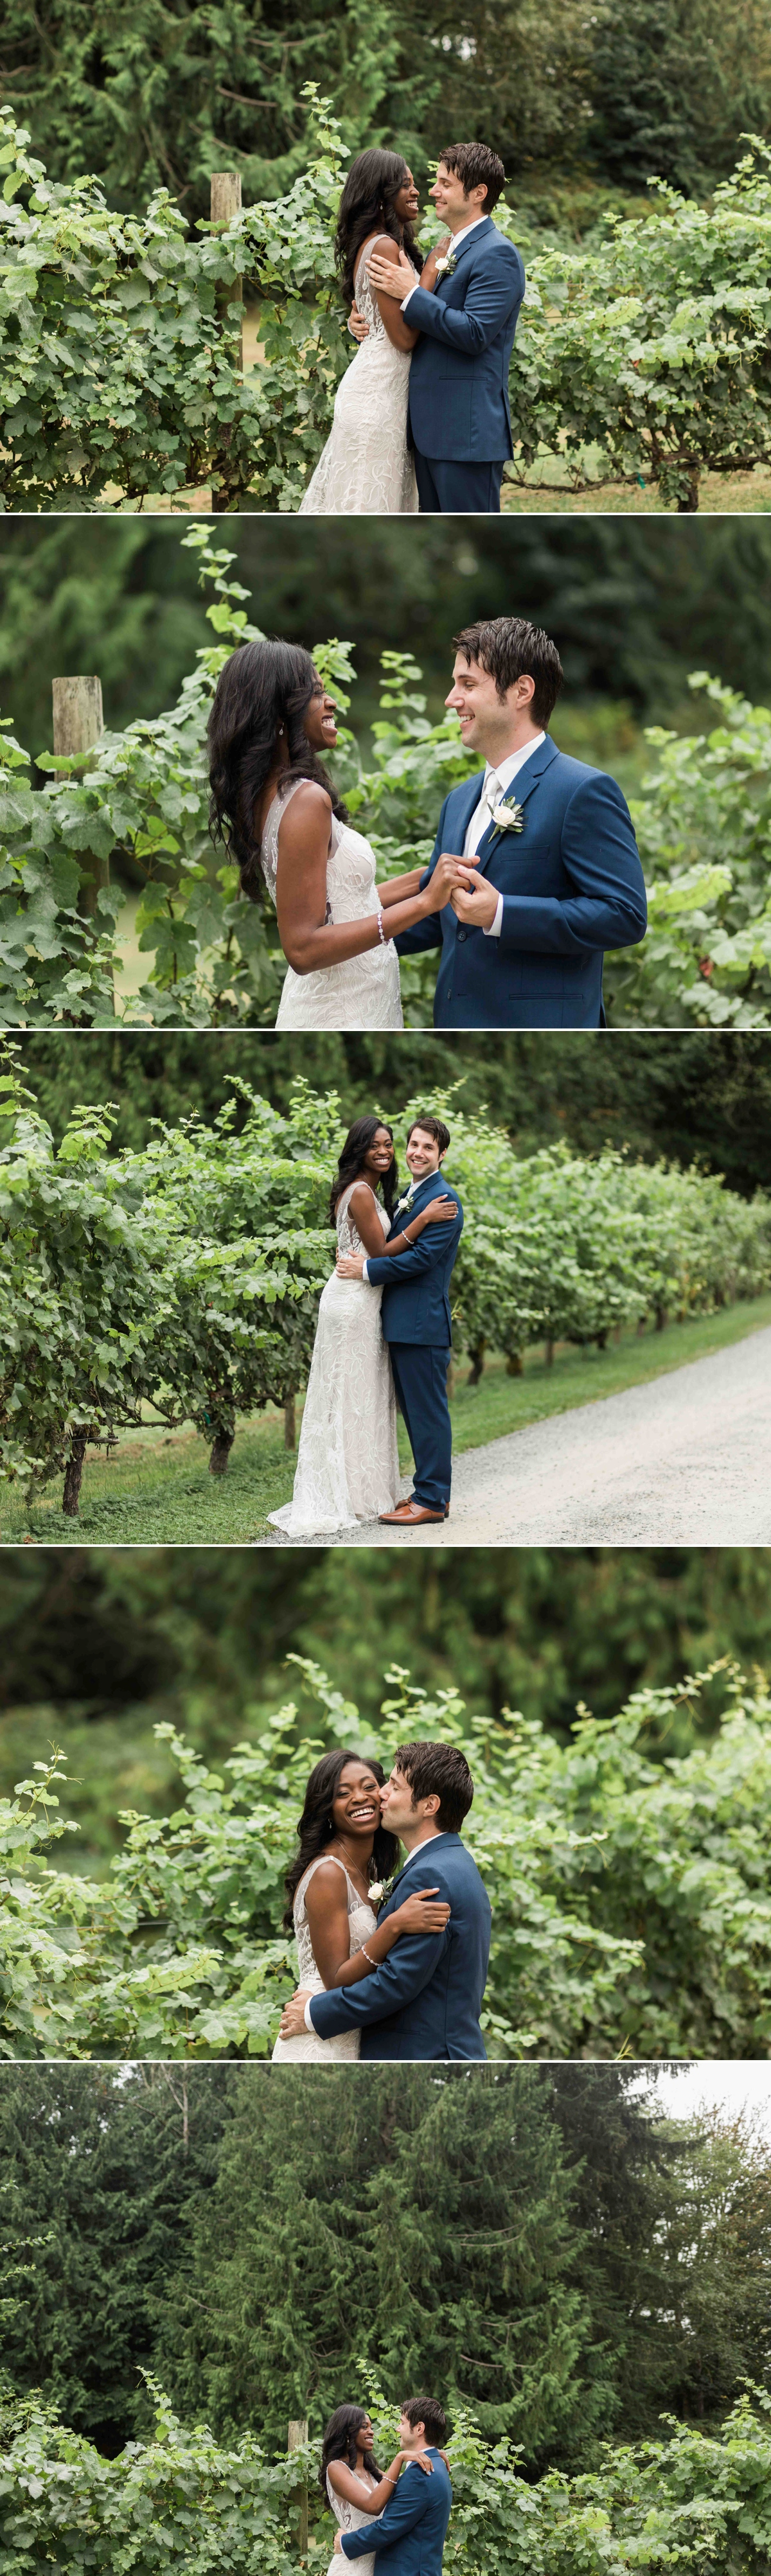 Now man and wife at Green Gates at Flowing Lake. Photographs by Joanna Monger Photography, Award Winning Snohomish Wedding Photographer.